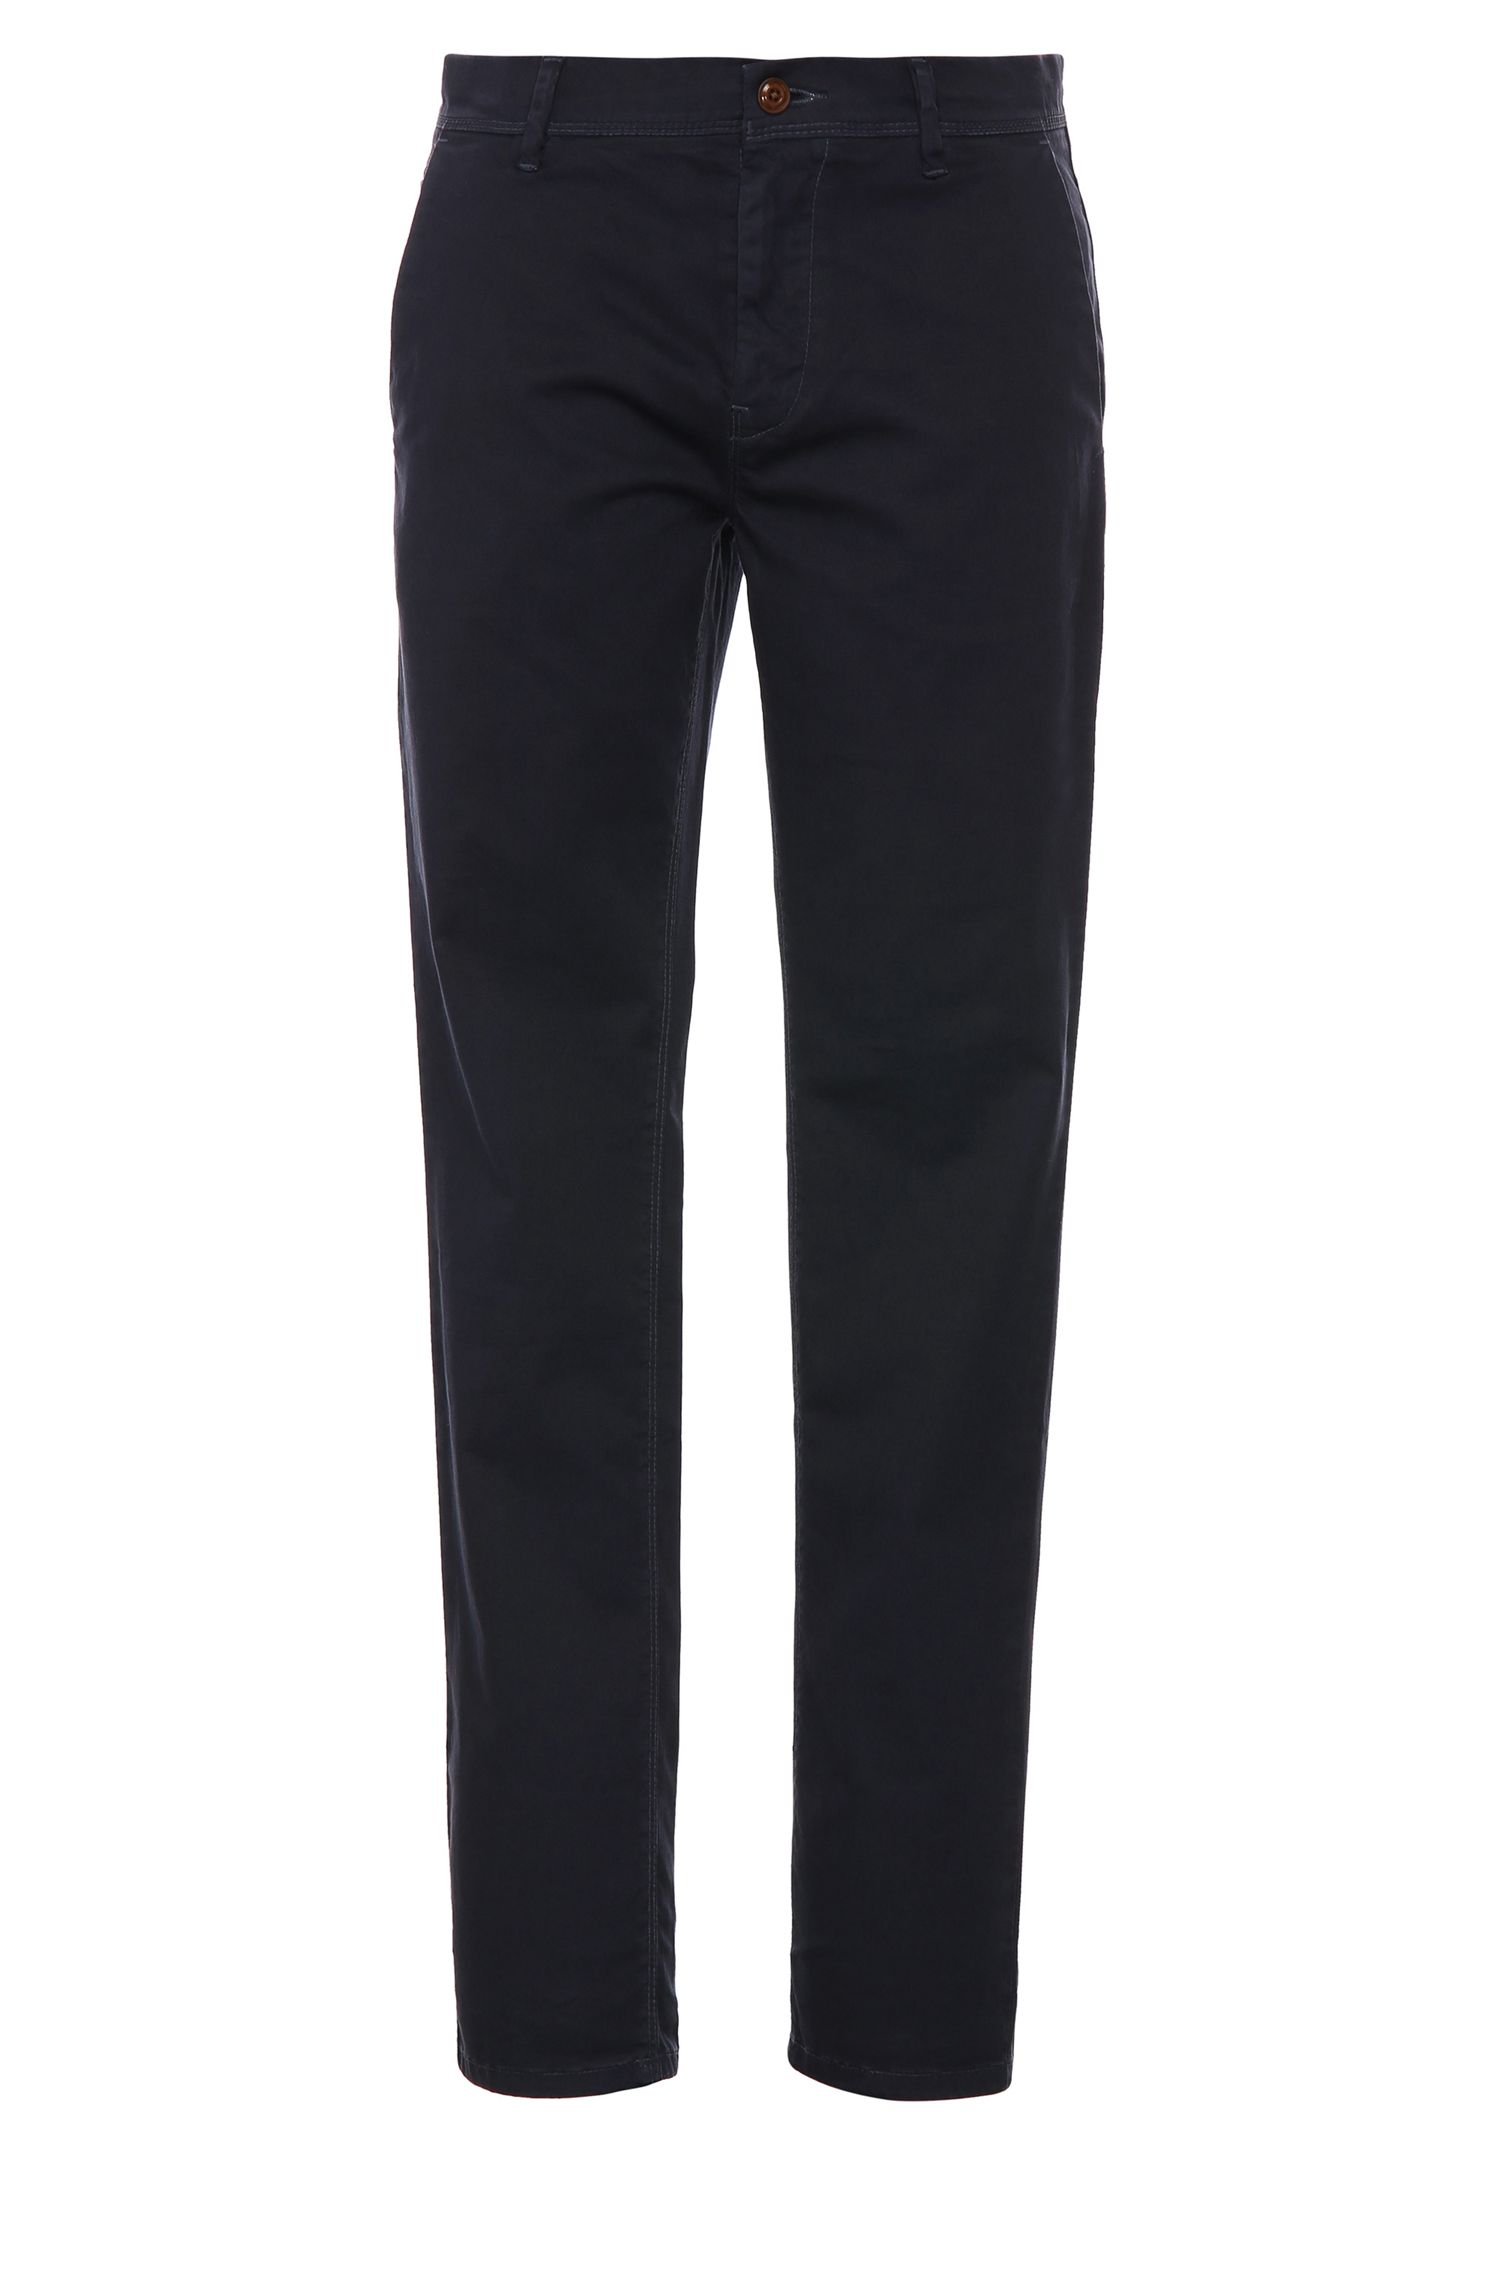 'Schino-Slender-D' | Slim Fit, Stretch Cotton Chinos